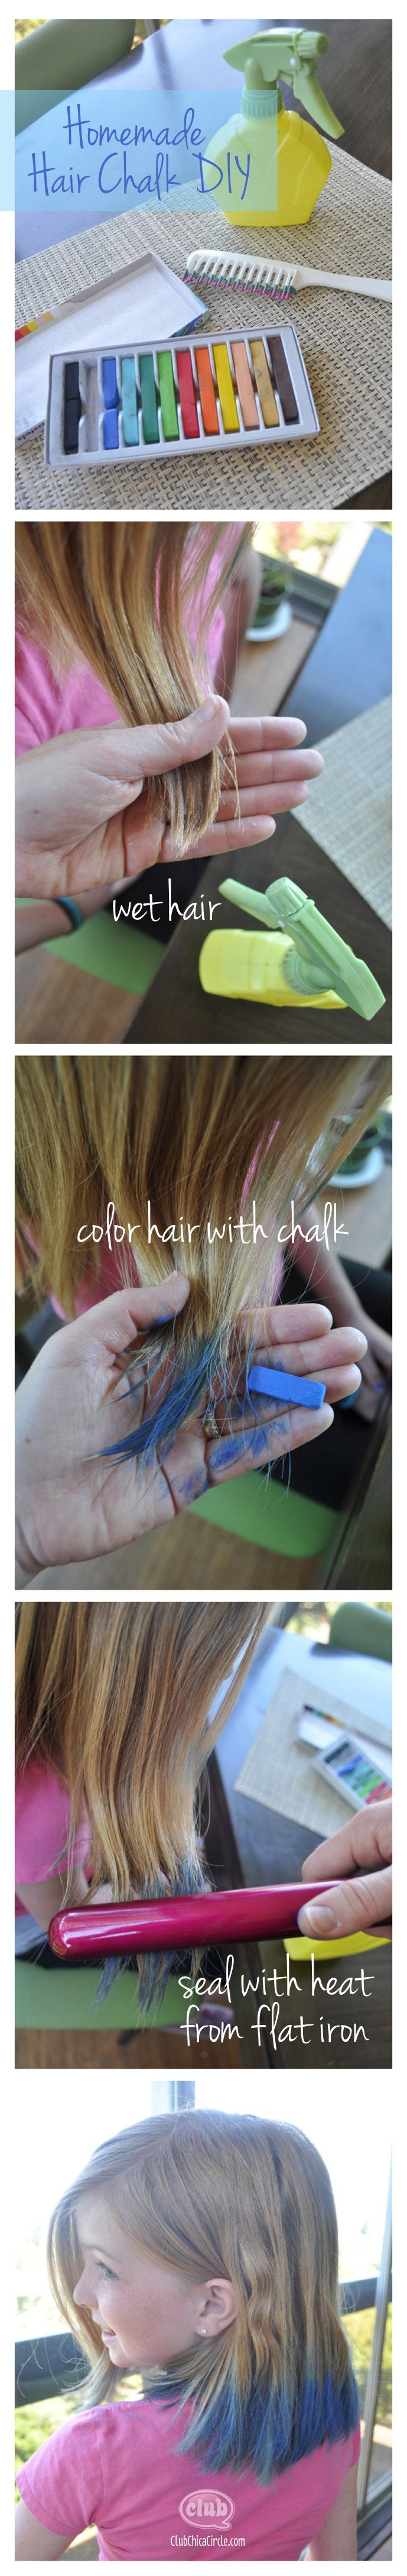 Create this cool hair fashion trend at home with the easy homemade